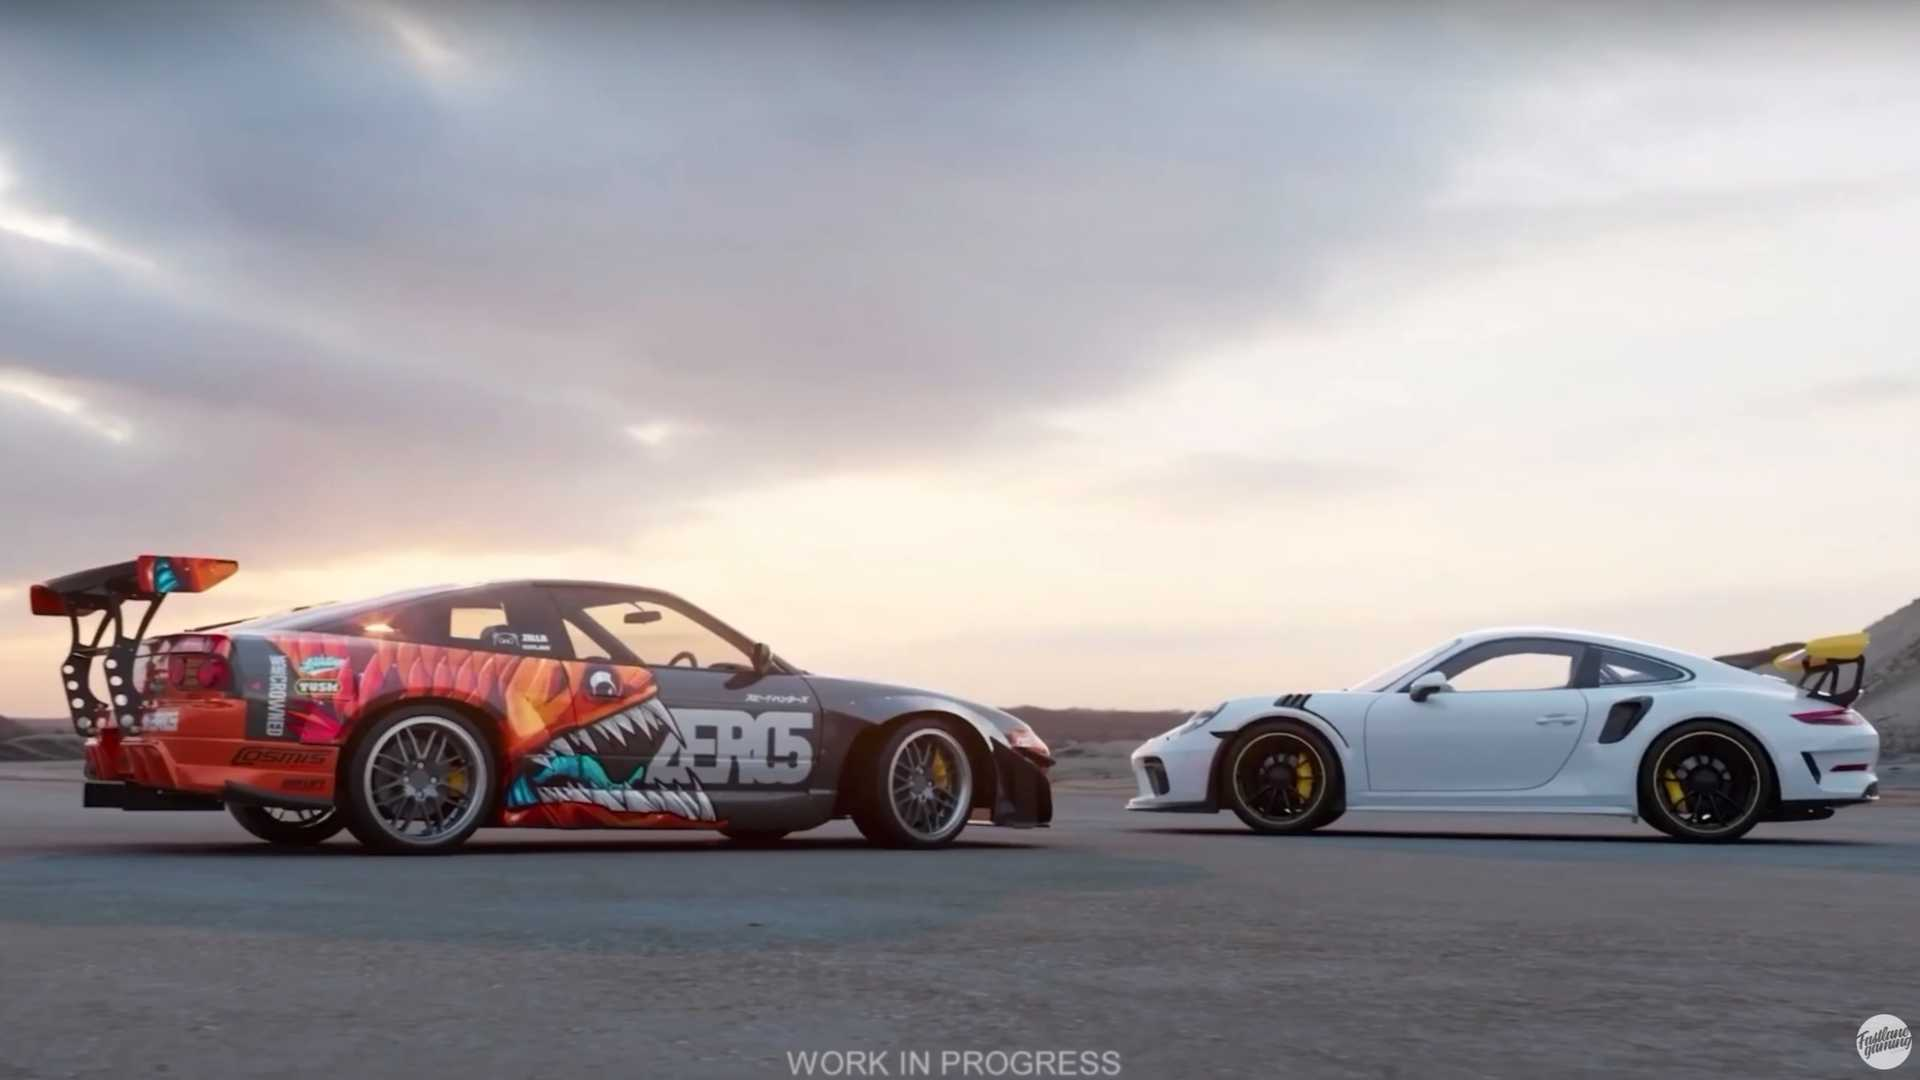 Here S An Early Look At The Next Need For Speed Game